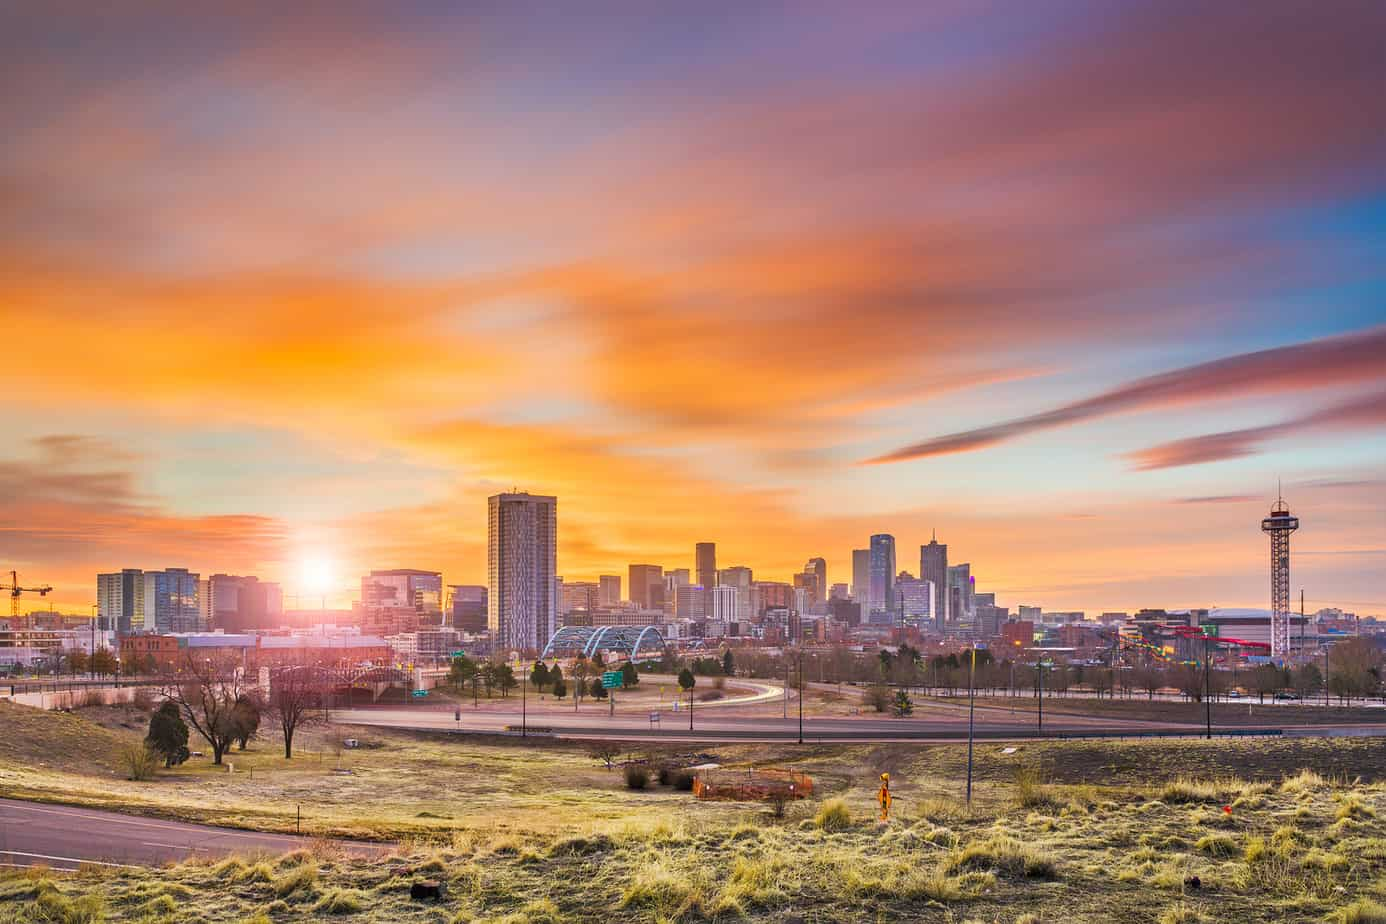 romantic things to do in denver header image - photo of denver skyline at sunset, colorful sky